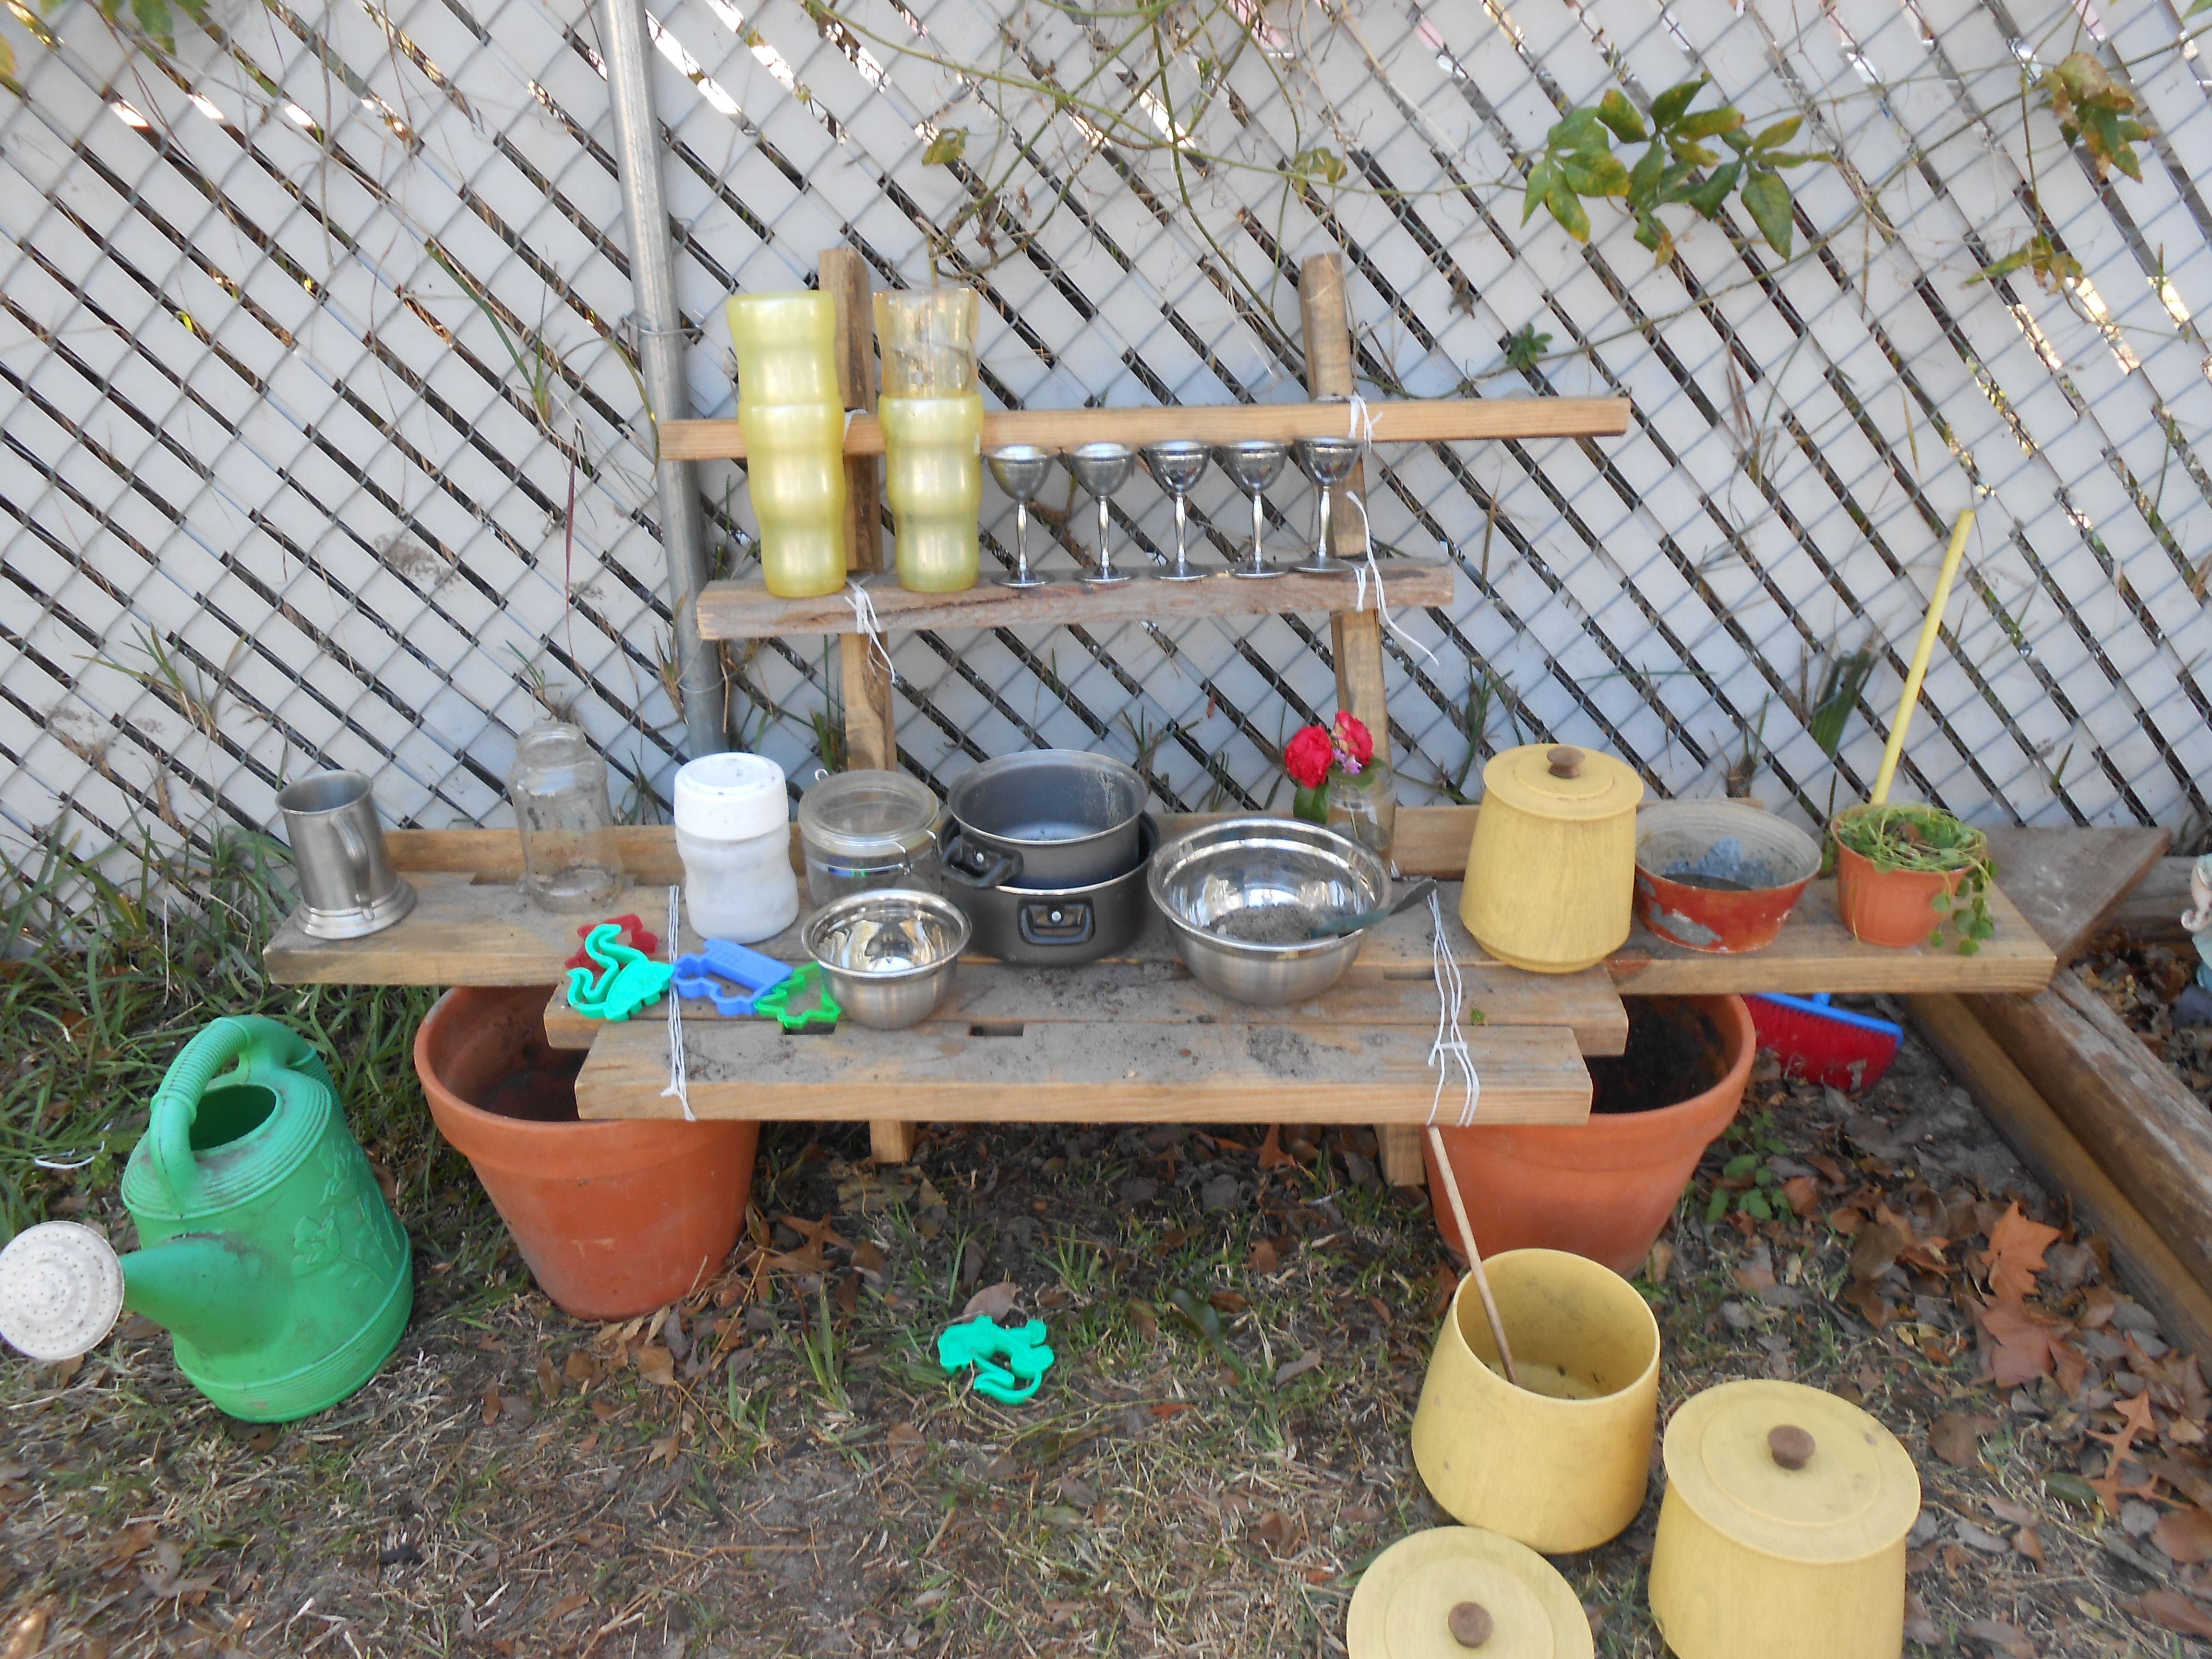 OUTDOOR MUD KITCHEN Simple to make. I got idea after i